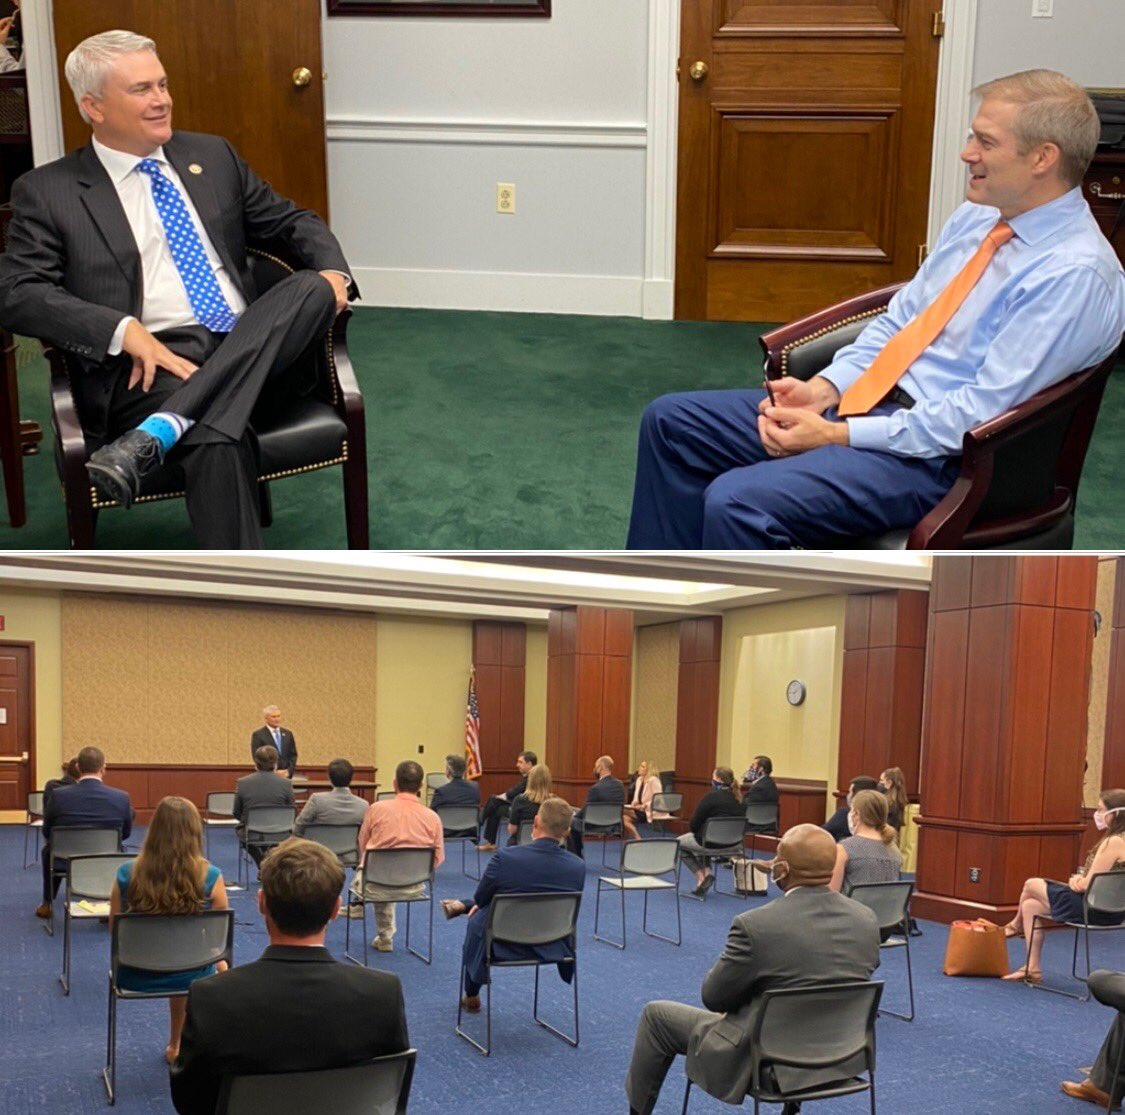 Met with my predecessor Jim Jordan, each individual @GOPoversight member & the entire staff to discuss the future. There are so many areas of unnecessary spending & government overreach we should be examining. Instead the Democrat majority wastes tax $$ on baseless investigations